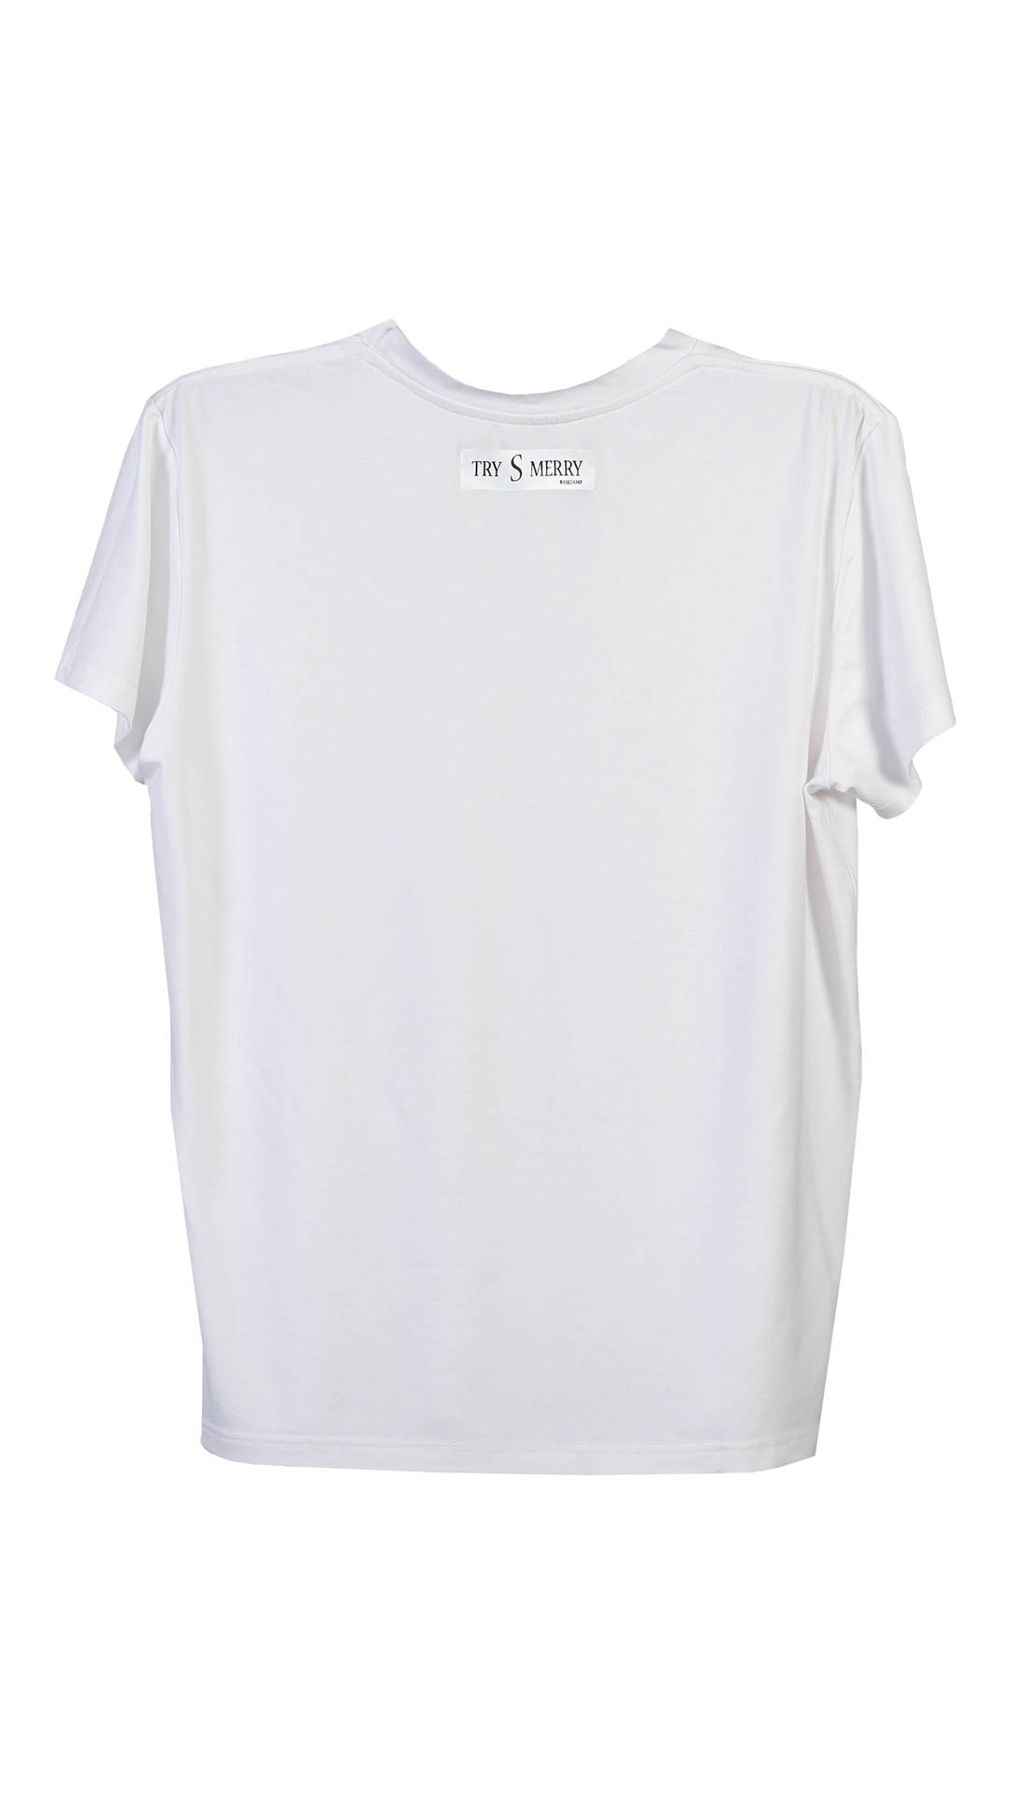 Mr White t-shirt